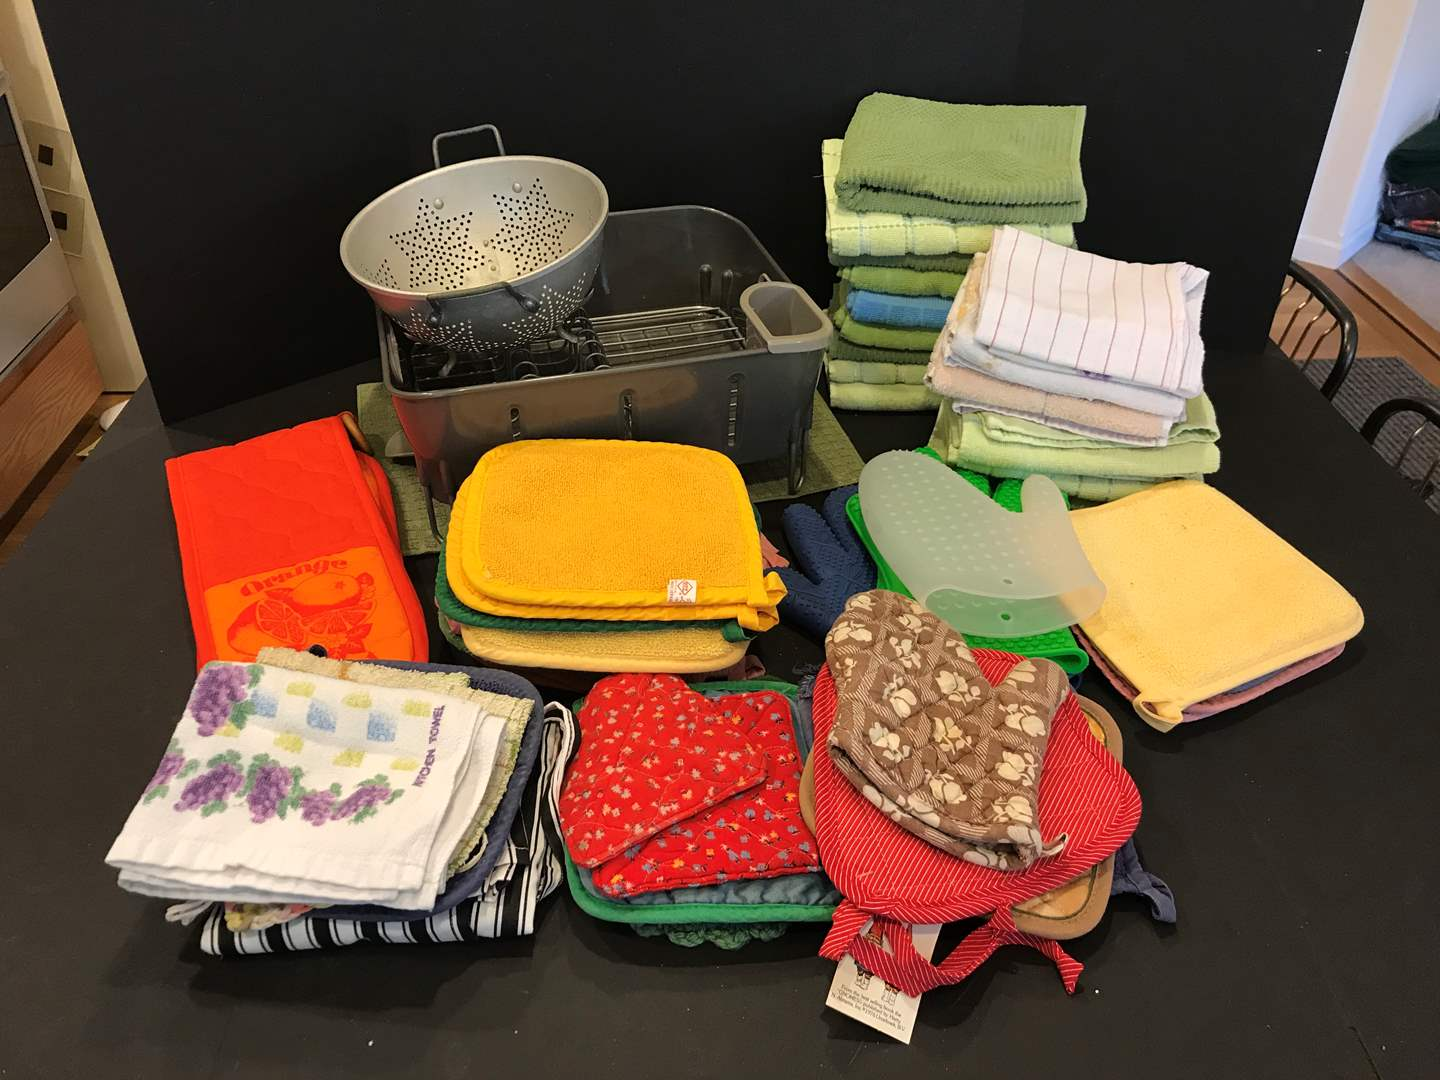 Lot # 98 - Large Selection of Dish Towels, Dish Drying Rack, Oven Mats & Strainer (main image)